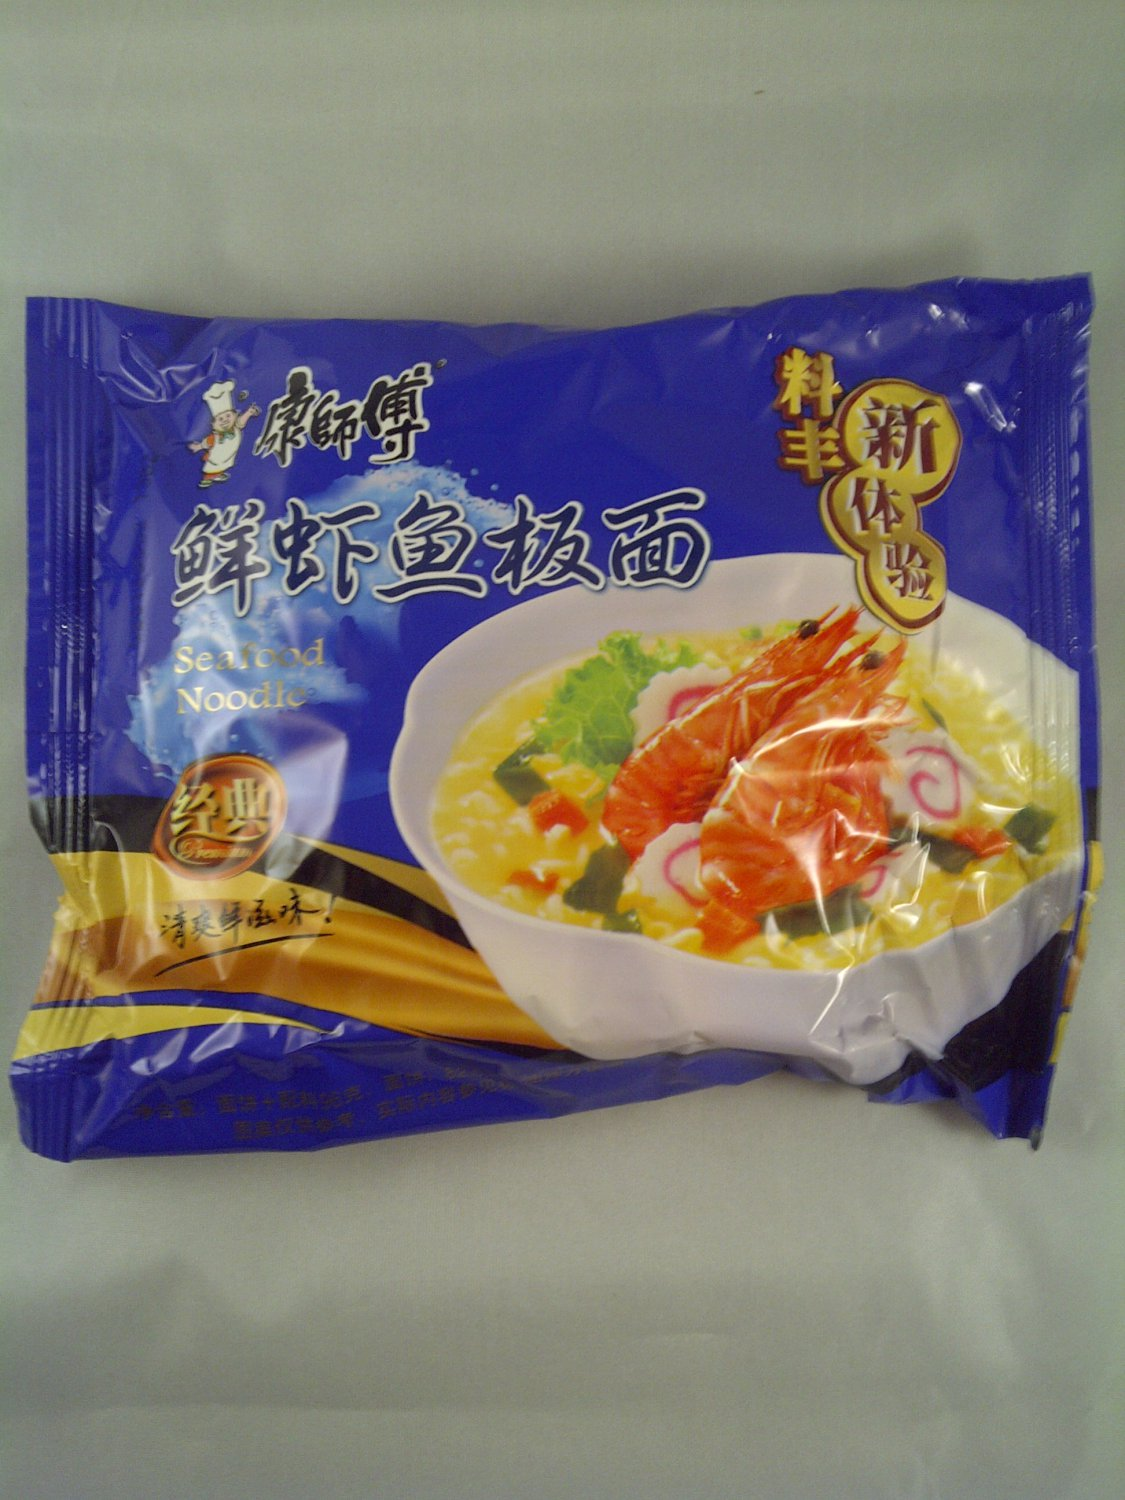 Kang Shifu Artificial Sea Food Flavor Instant Noodle 5 Packs NEW